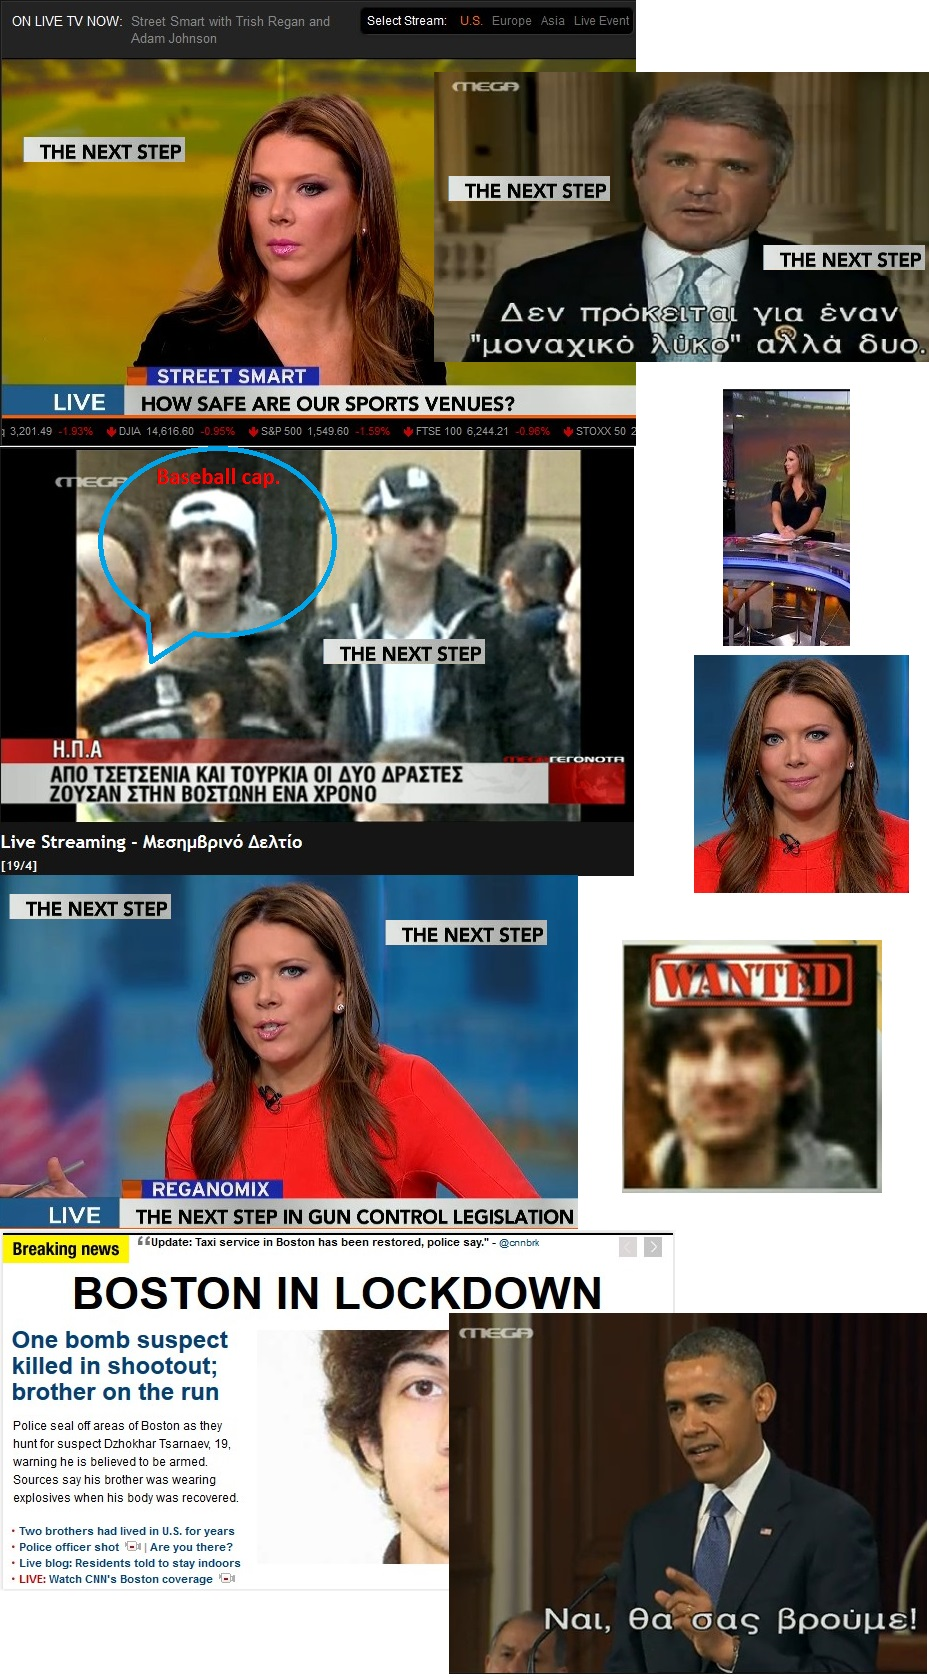 BLOOMBERG BOSTON MARATHON BOMBING SUSPECT BASEBALL 01 01 190413